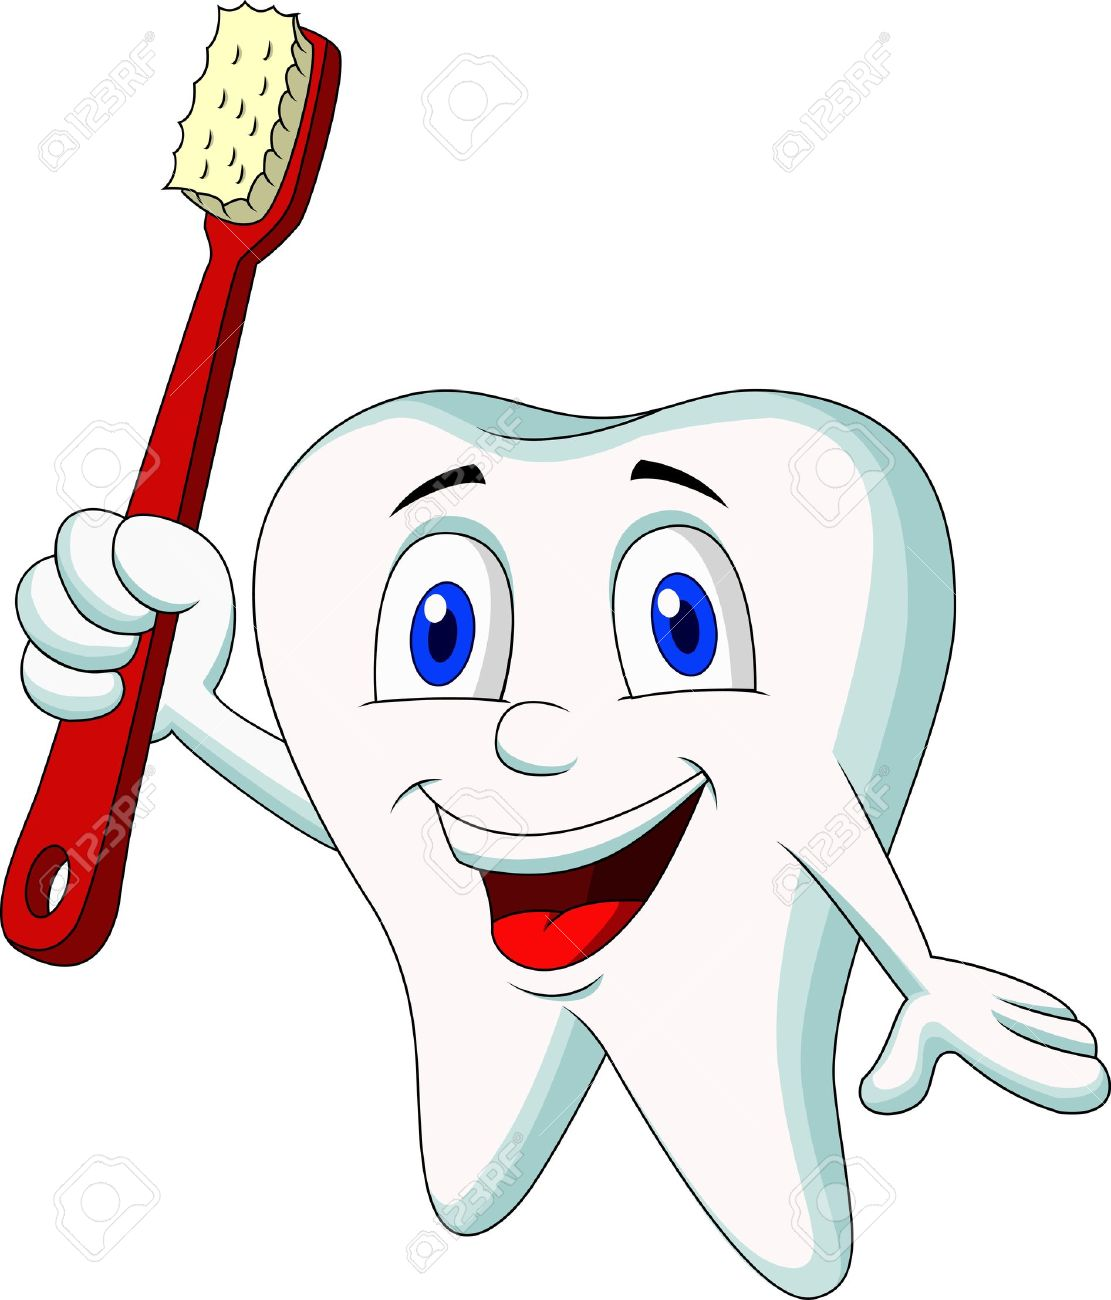 Cute tooth cartoon holding tooth brush Stock Vector - 19119573